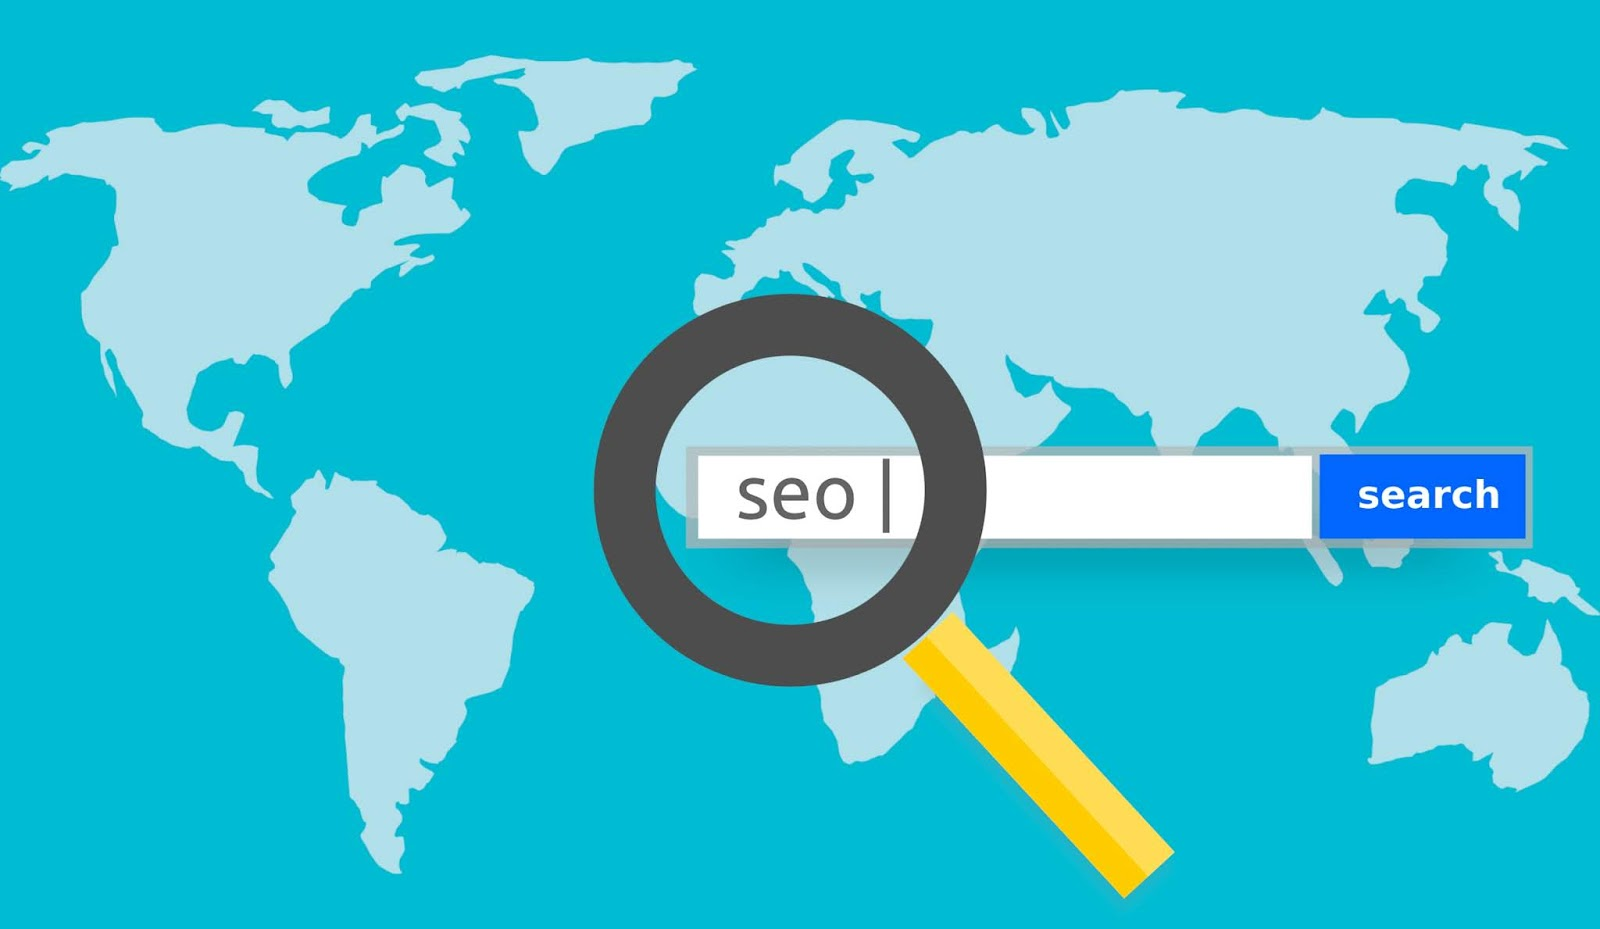 seo, search engine, browser, search, internet, www, http, web, google, search engine optimization, worldwide, link, e commerce, e business, web address, technology, display, information, to find